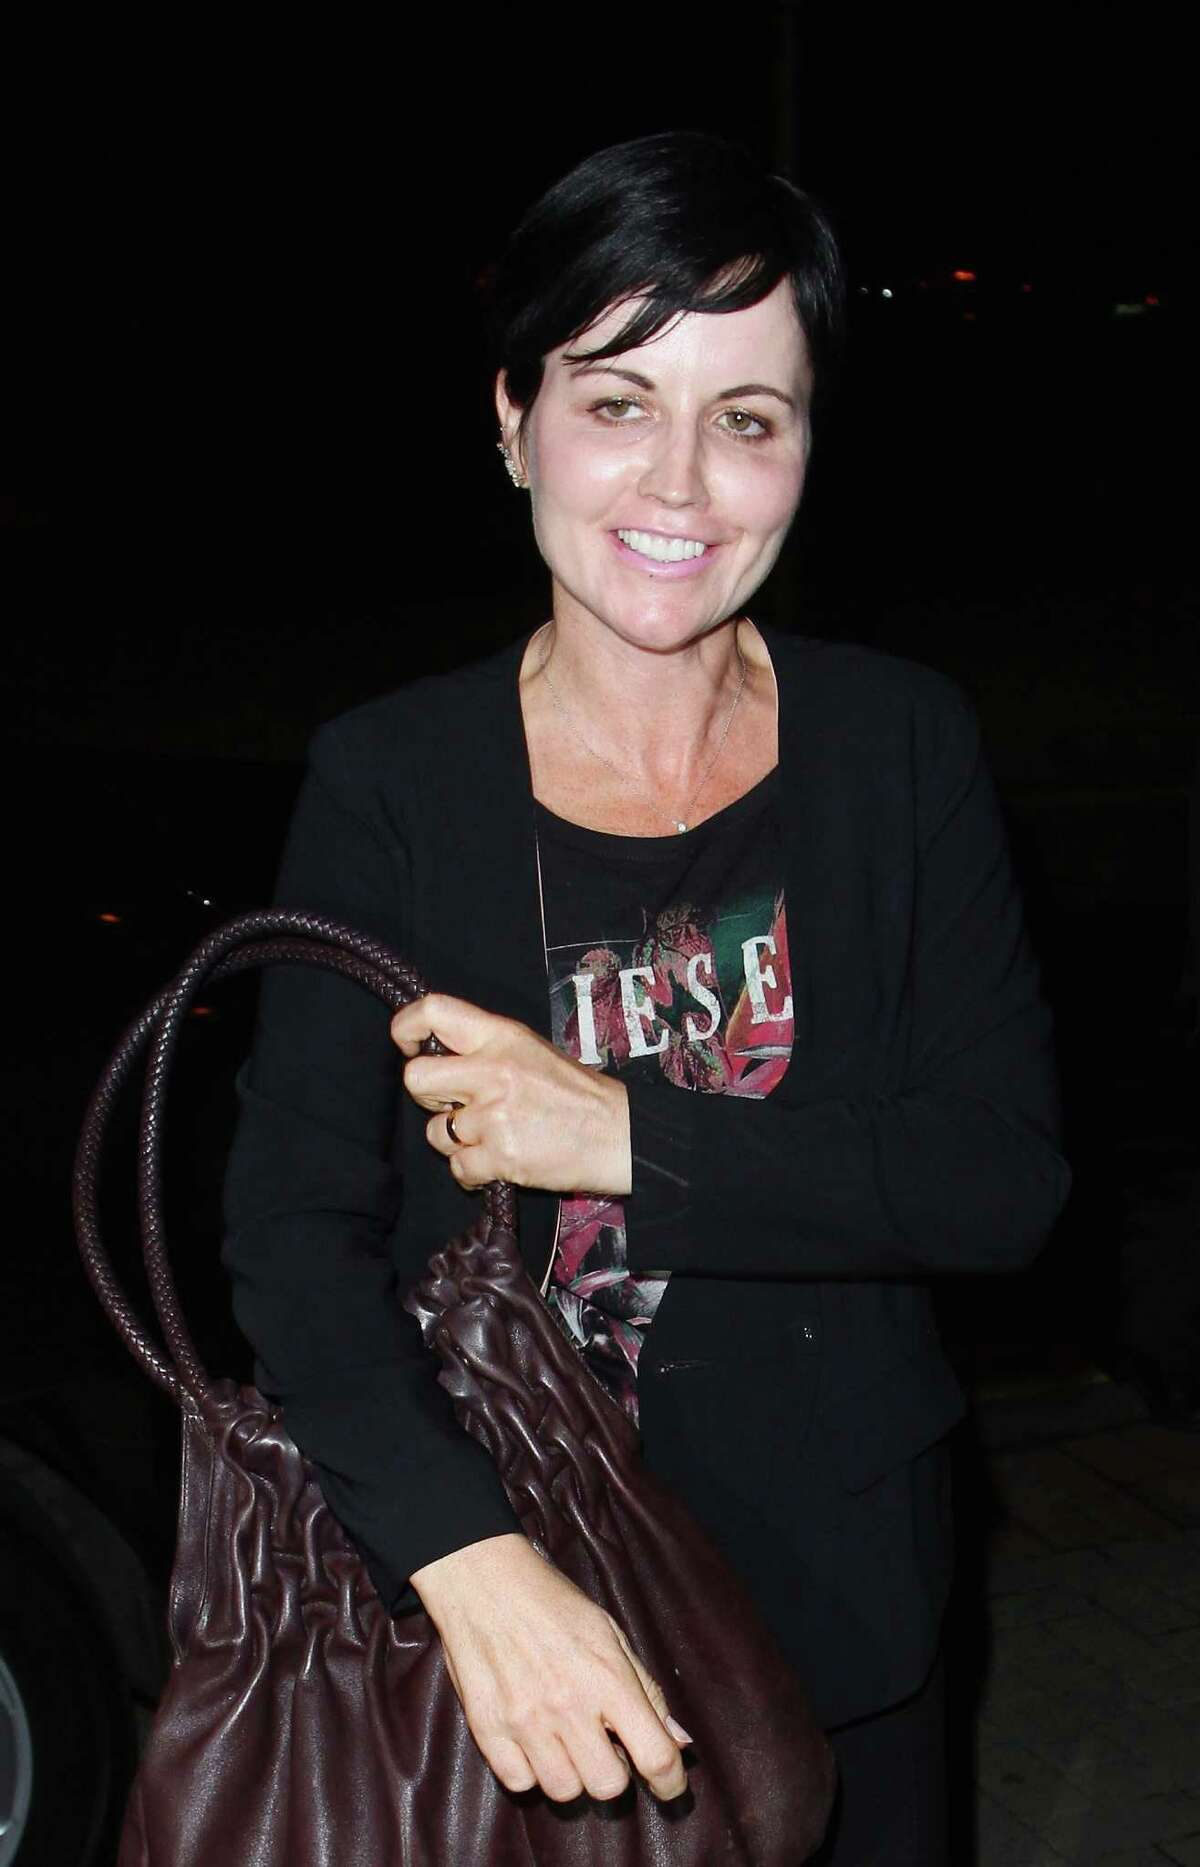 Dolores O'Riordan The Cranberries singer was arrested in November after she allegedly assaulted a crew member on a flight from the New York City to her native Ireland, and then assaulted an officer in the course of the arrest. Read more.